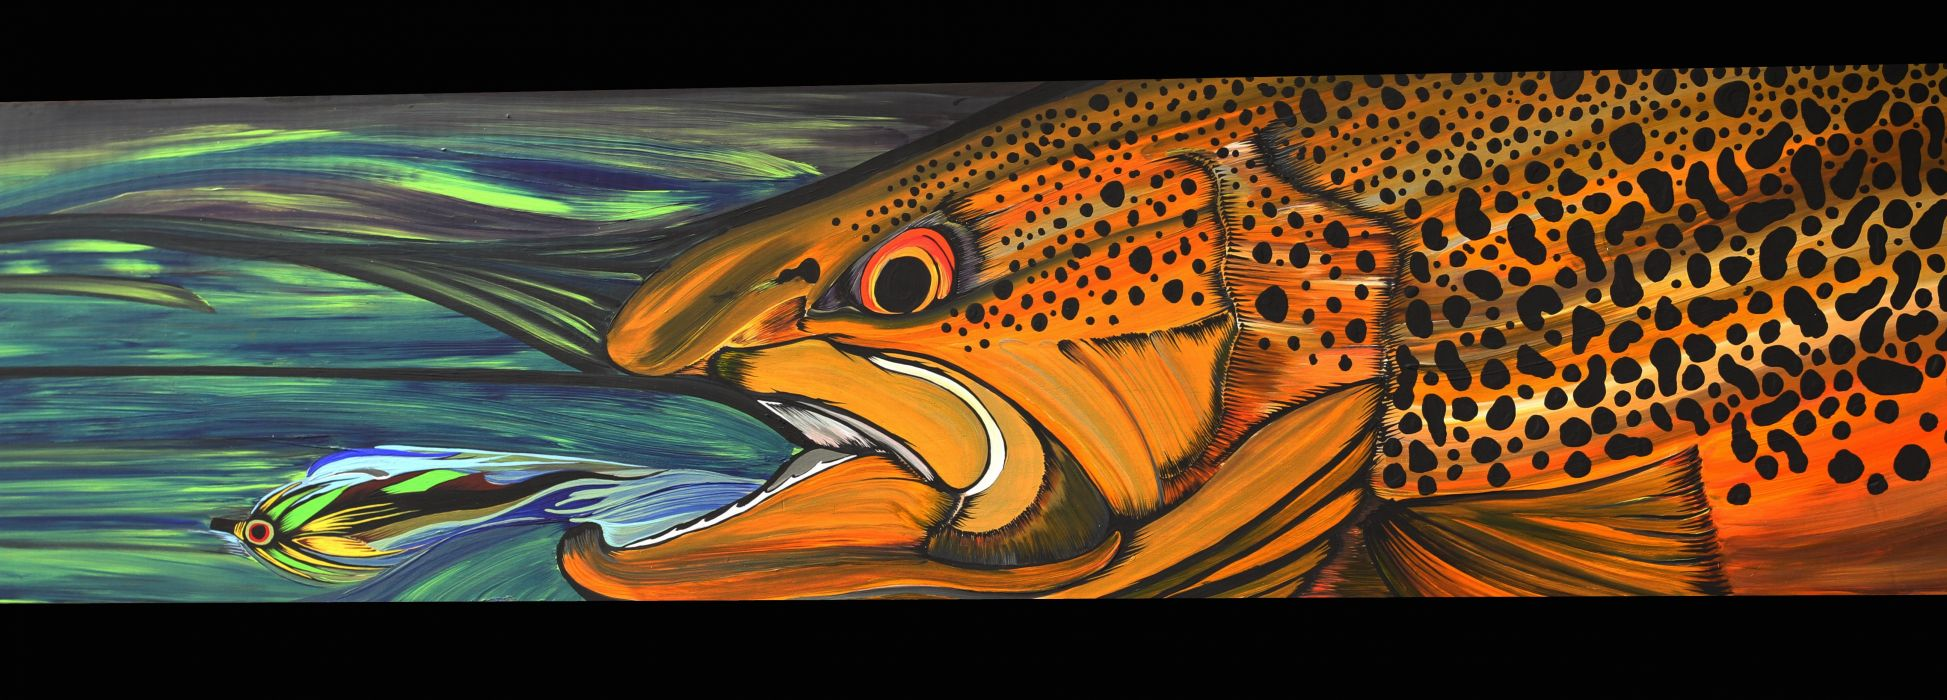 FISHING fish sport fishes bass trout artwork painting wallpaper